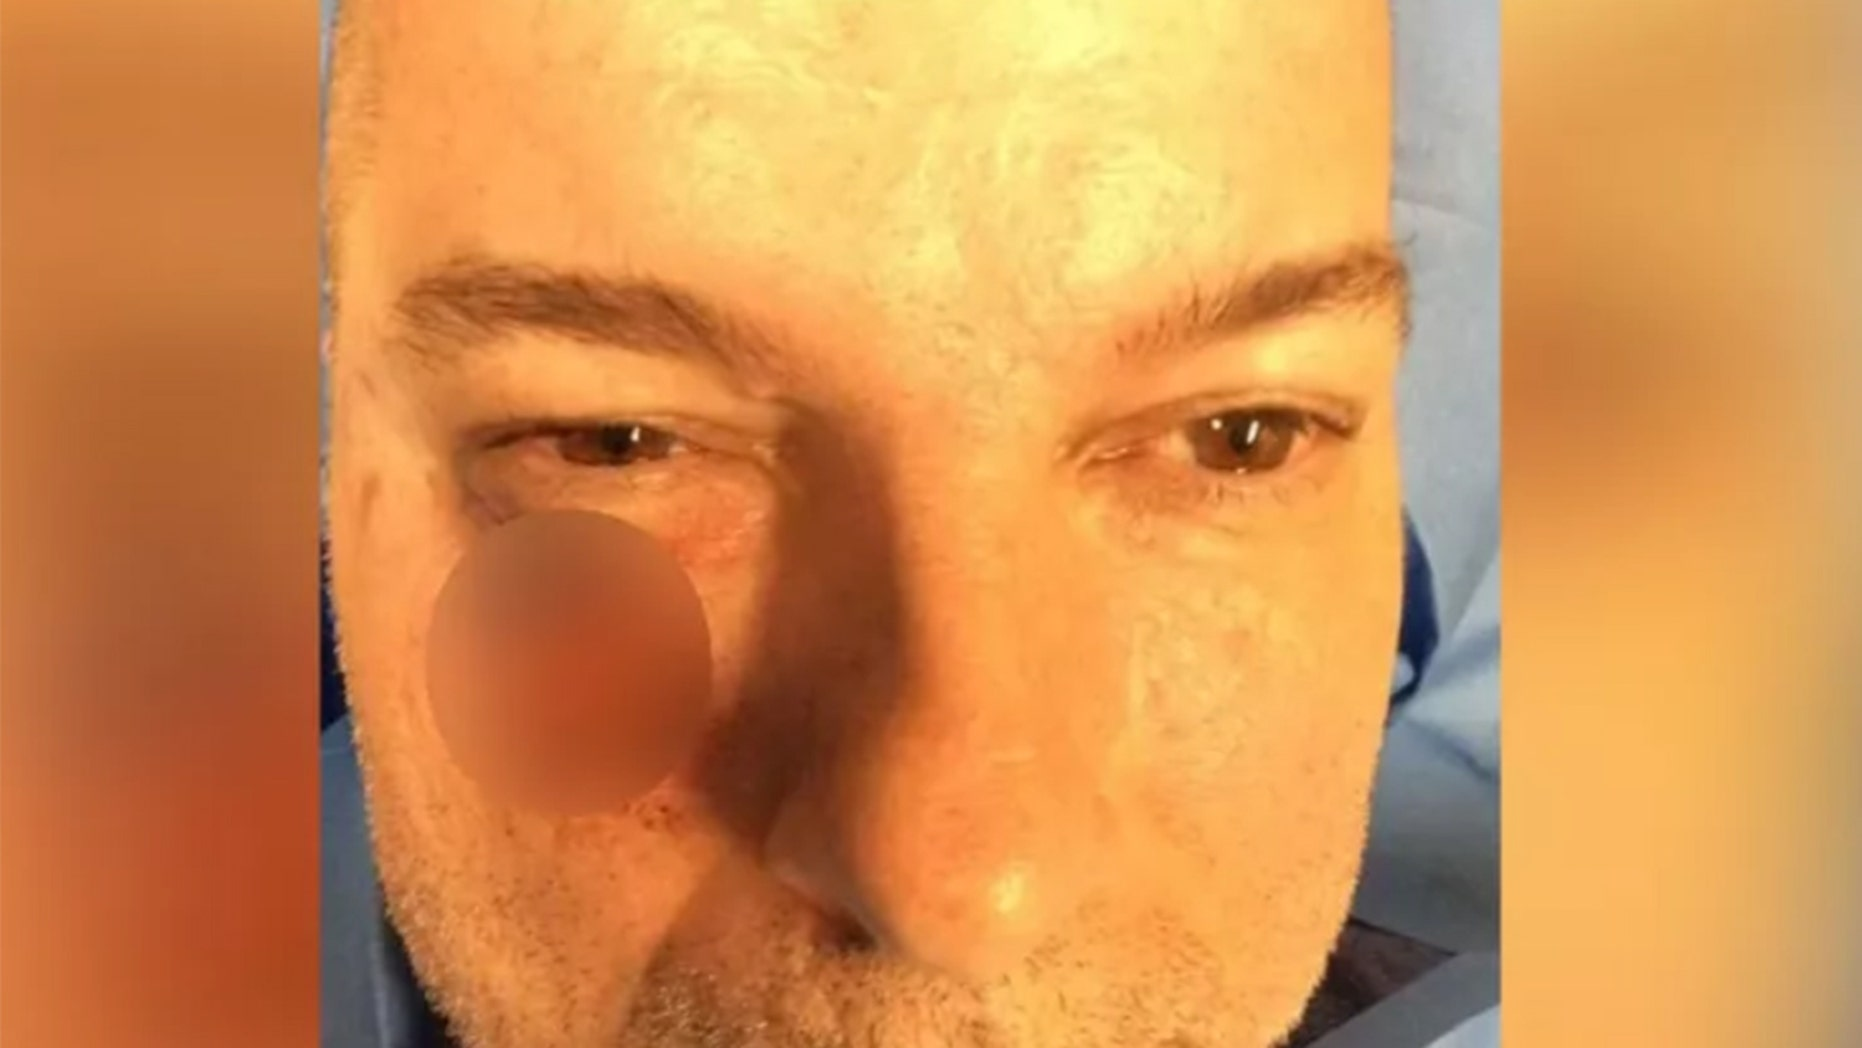 Shawn Montgomery visited the dermatologist after his dentist spotted discoloration on his face.